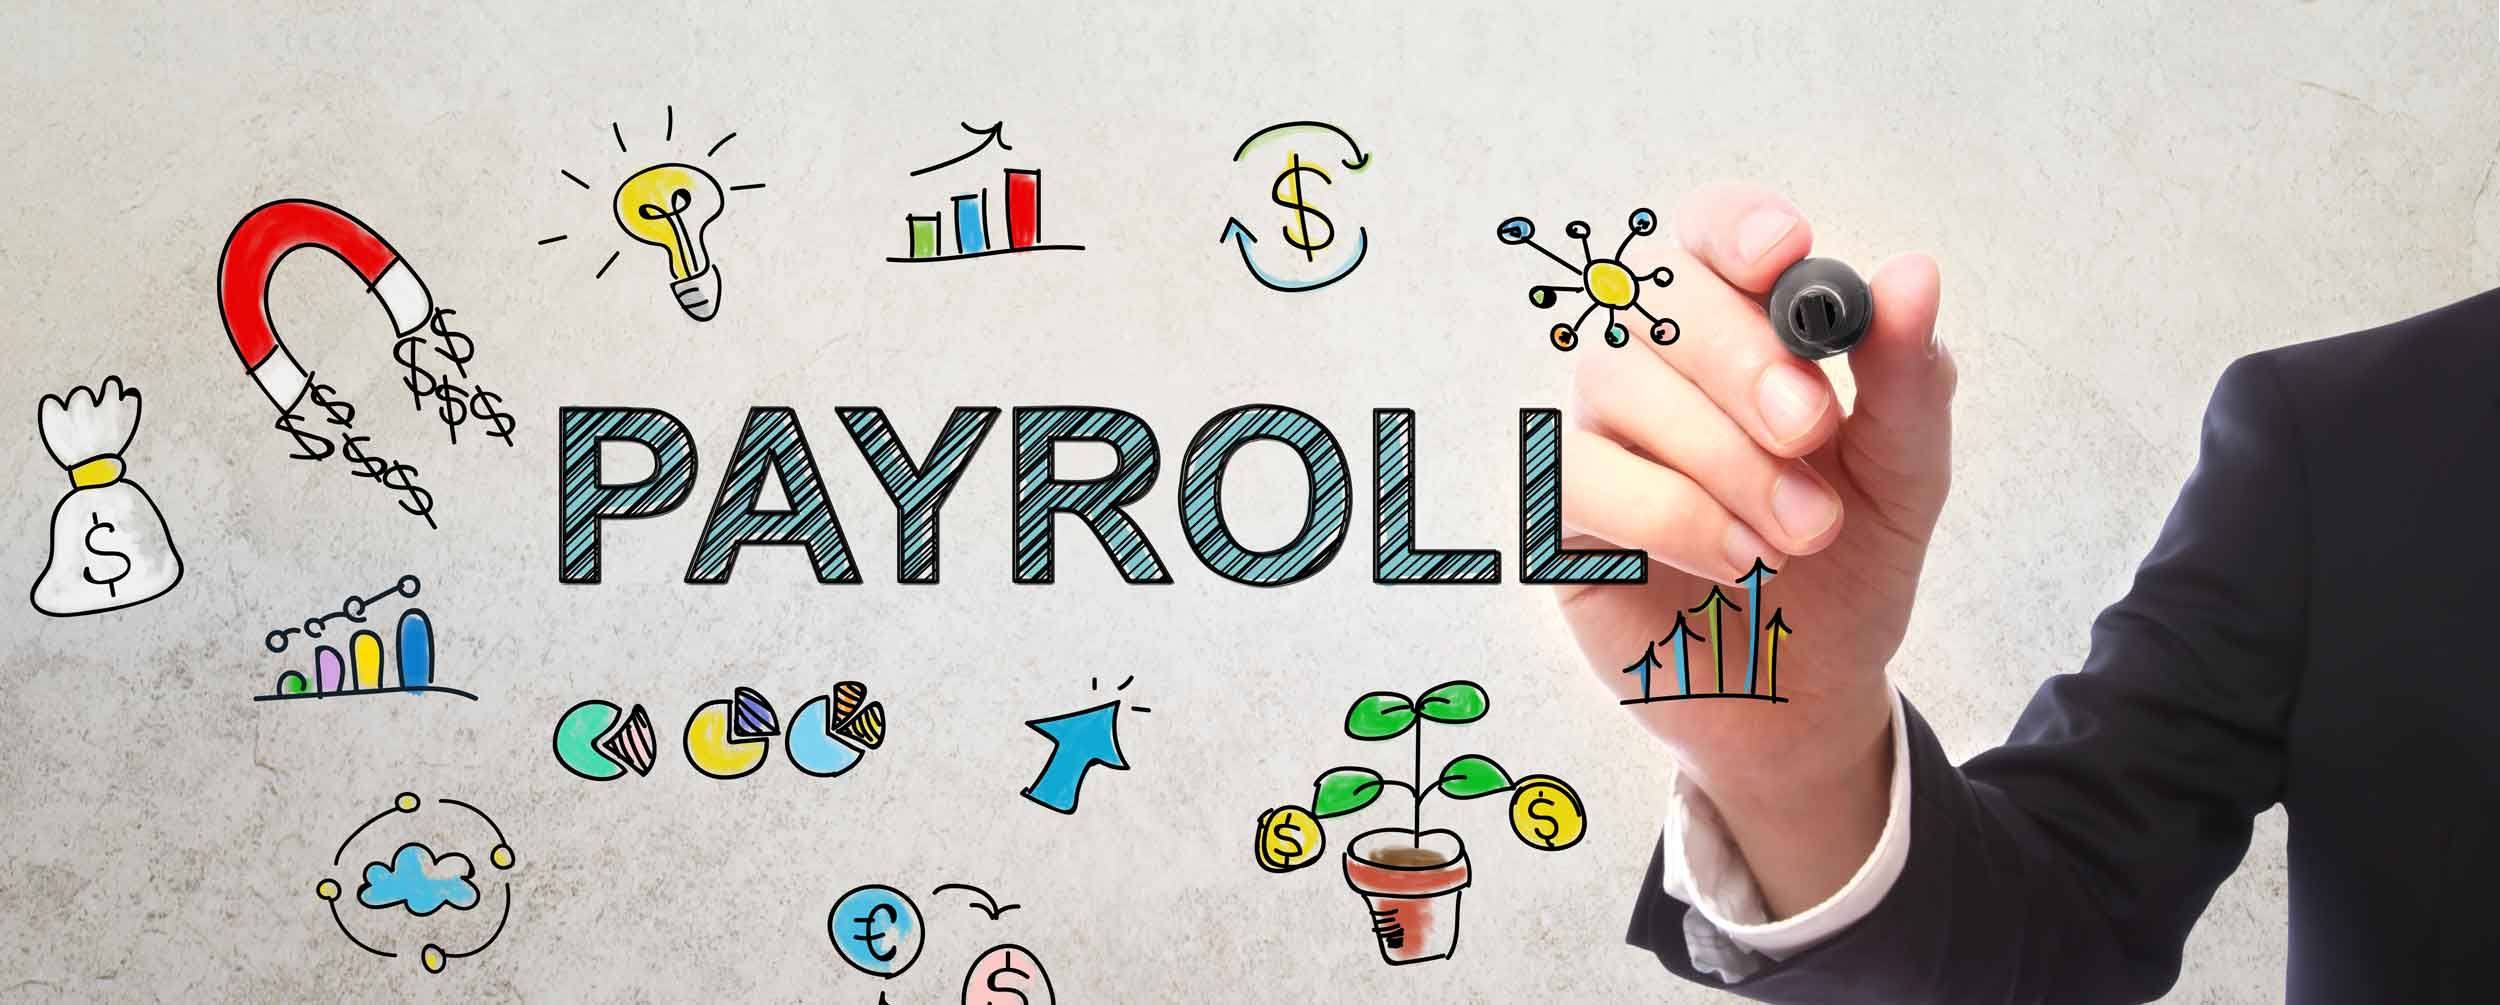 Mobile image of a person drawing on a board with the word payroll and other colorful financial icons